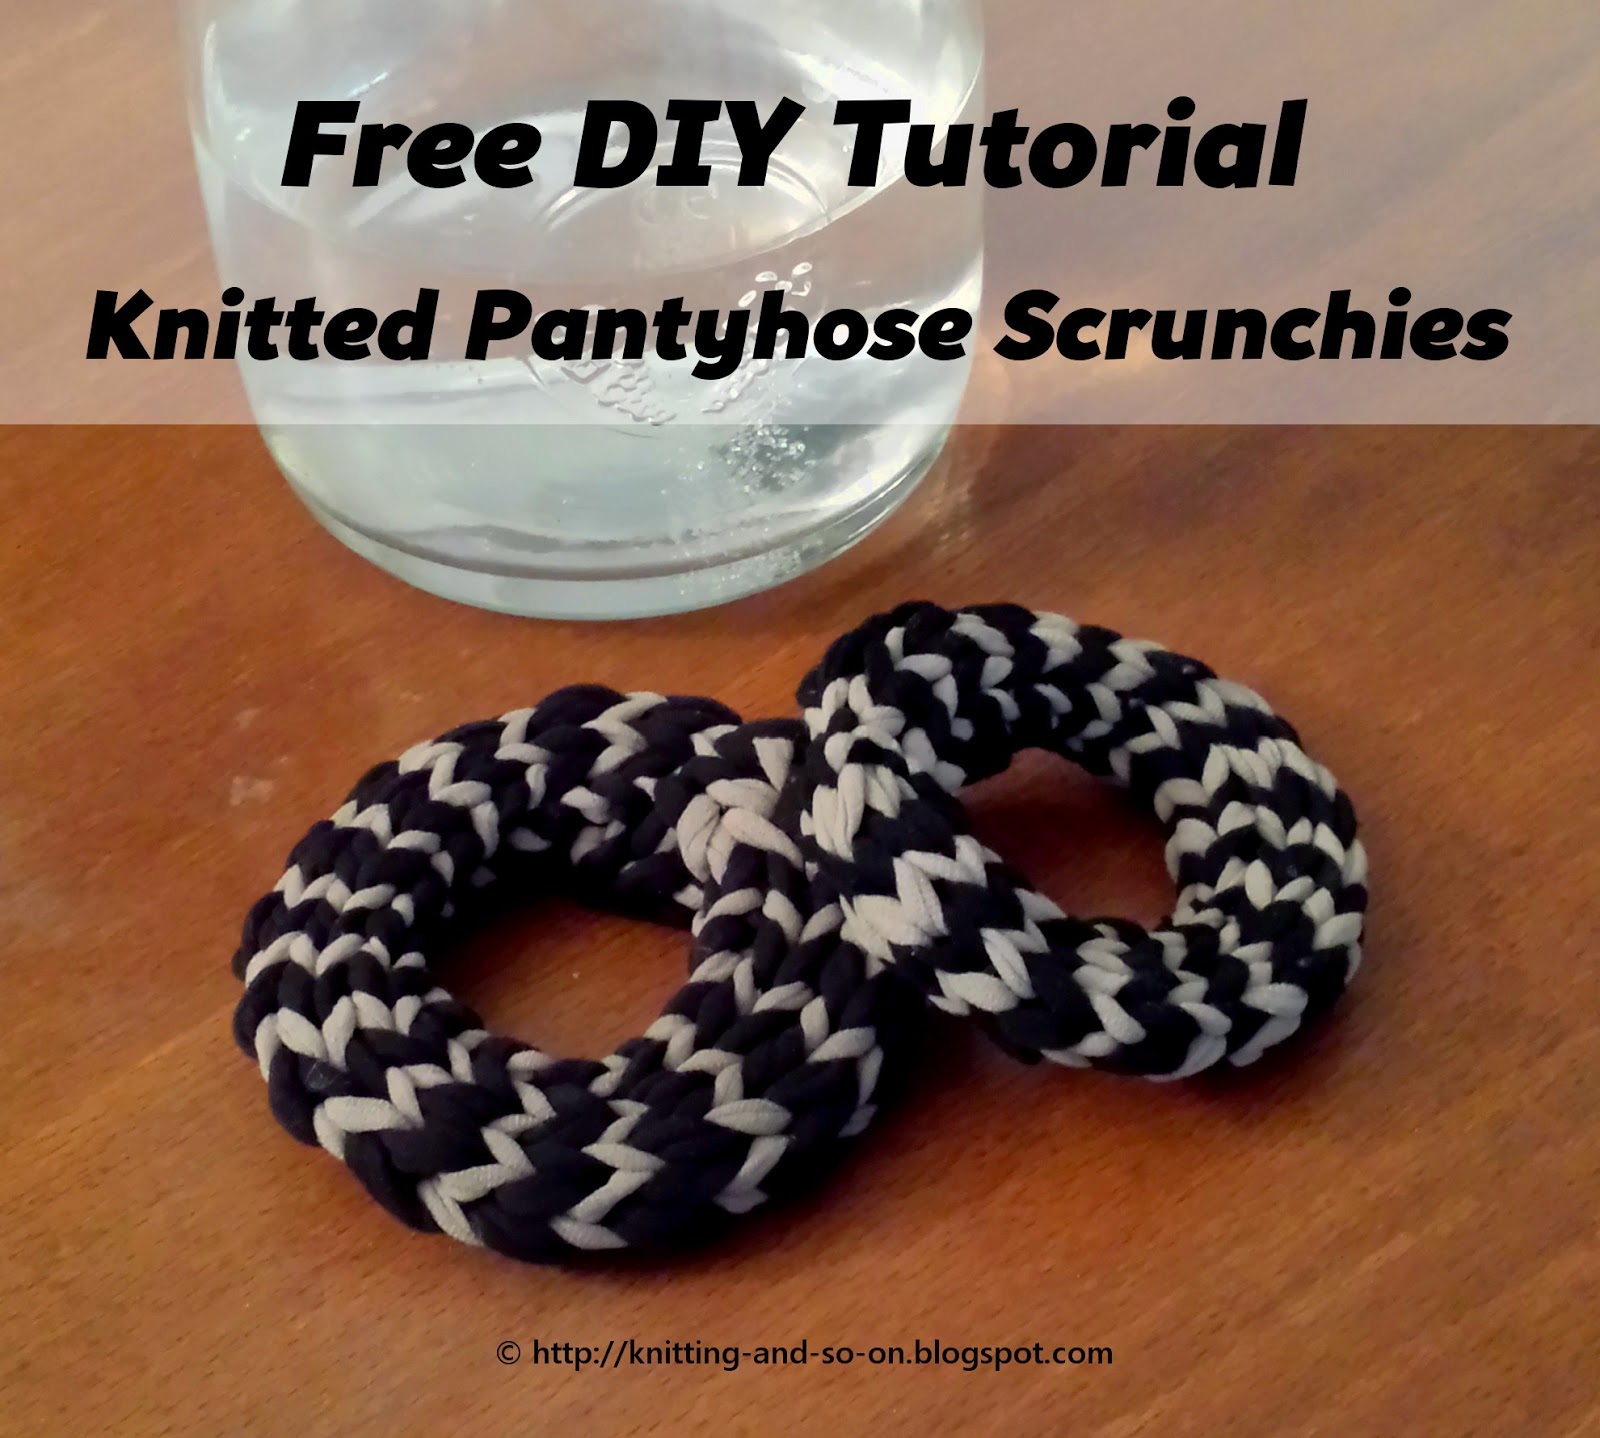 Free DIY Tutorial: Knitted Pantyhose Scrunchies; http://knitting-and-so-on.blogspot.com